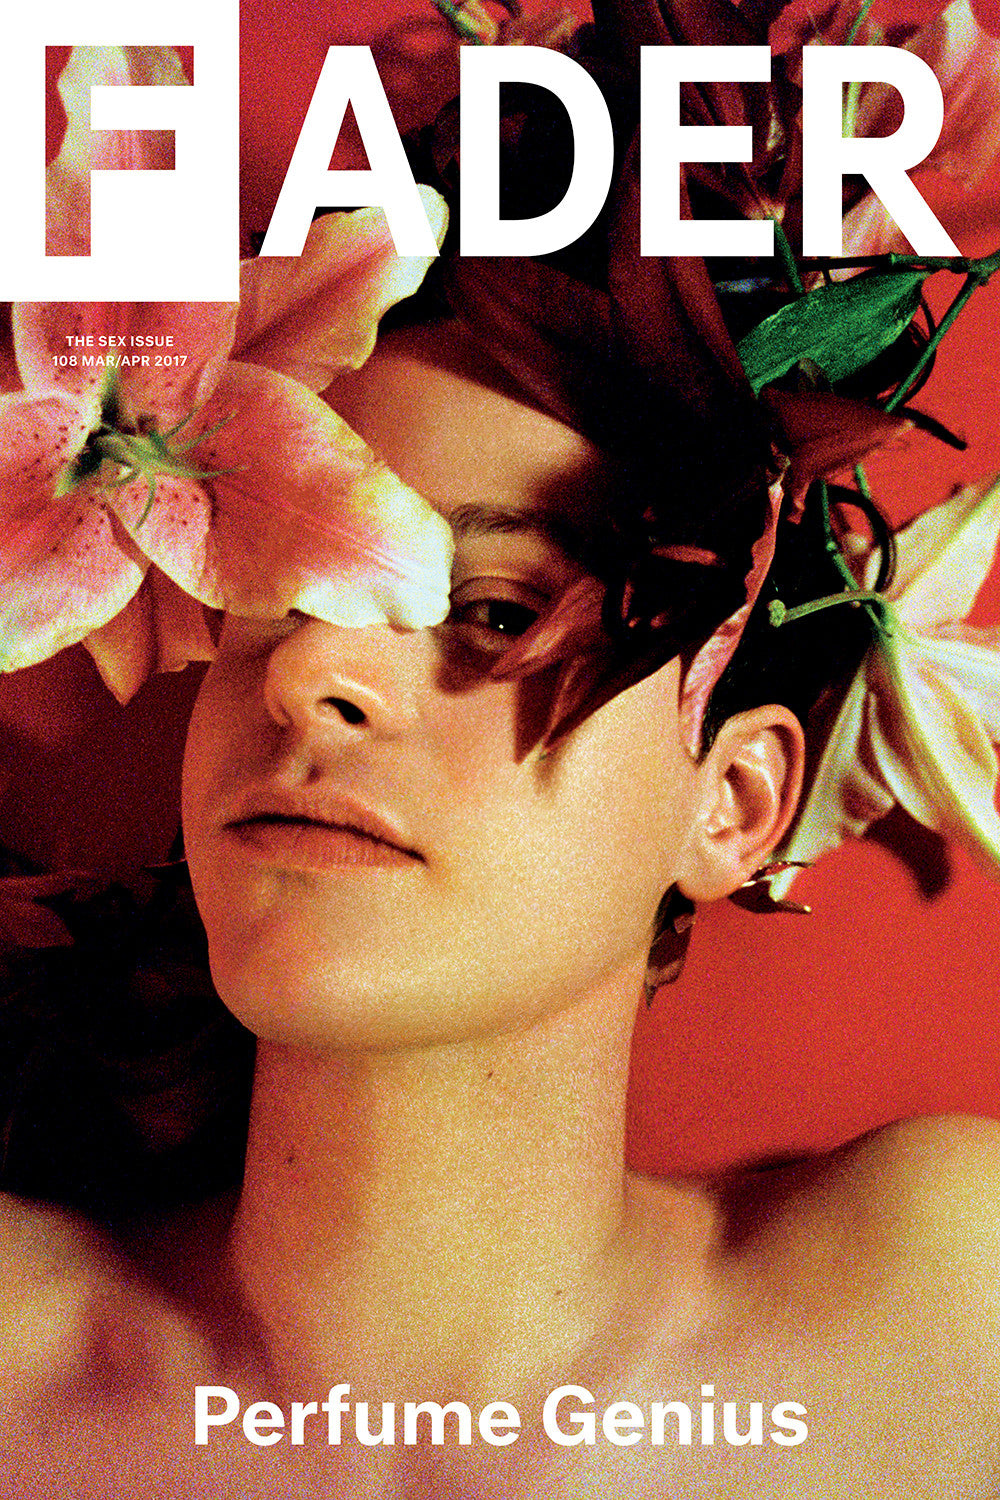 "Perfume Genius / The FADER Issue 108 Cover 20"" x 30"" Poster"